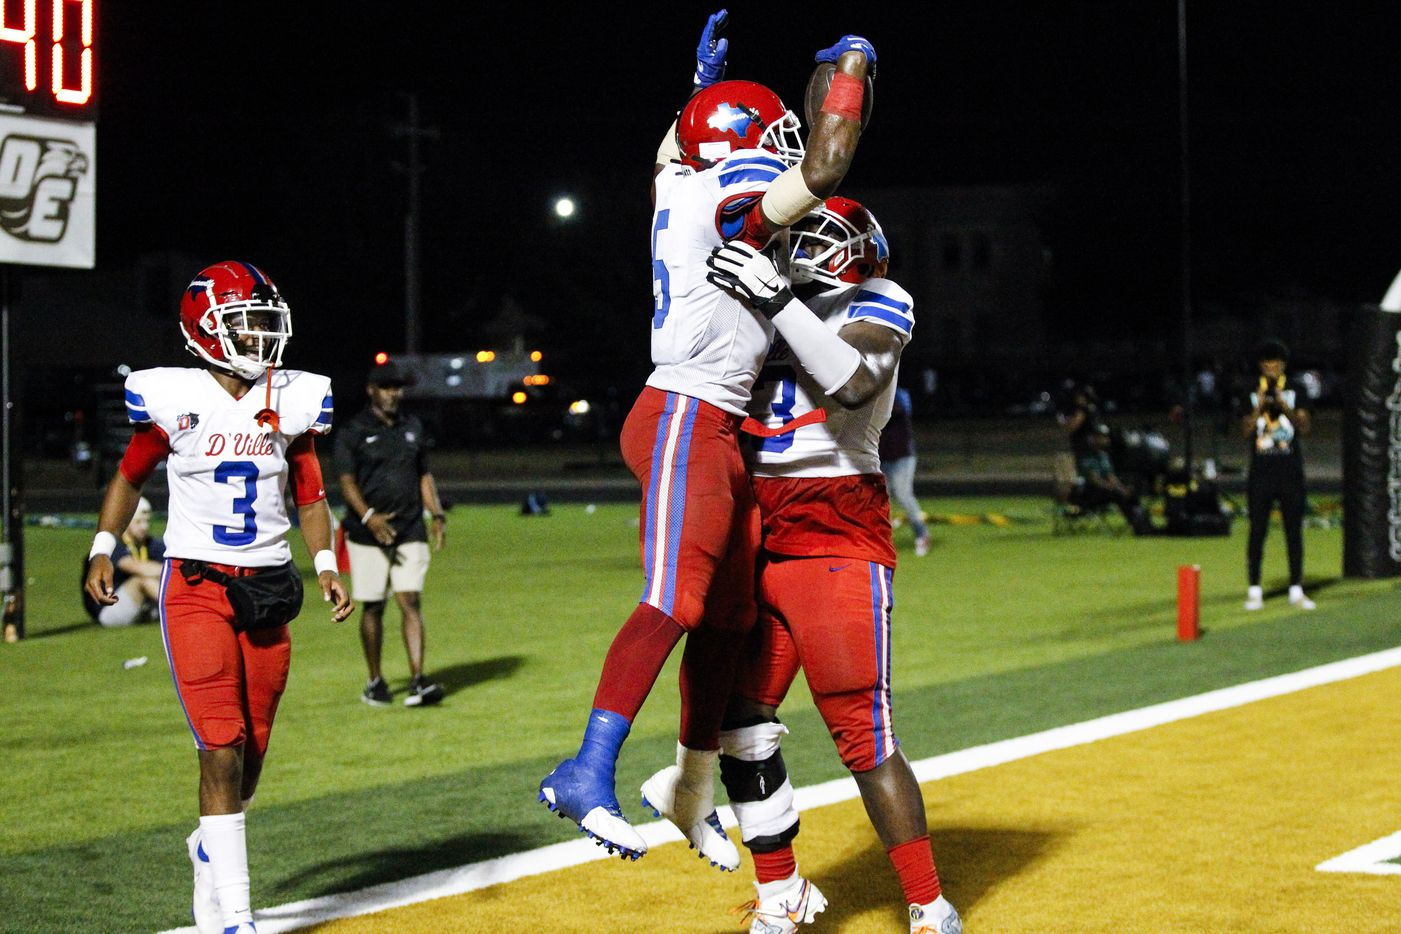 Duncanville senior running back Malachi Medlock (5) is congratulated by senior offensive lineman Jaylen Early, right, after scoring a touchdown during the second half of a high school football game against DeSoto at DeSoto High School, Friday, September 17, 2021. Duncanville won 42-21. (Brandon Wade/Special Contributor)